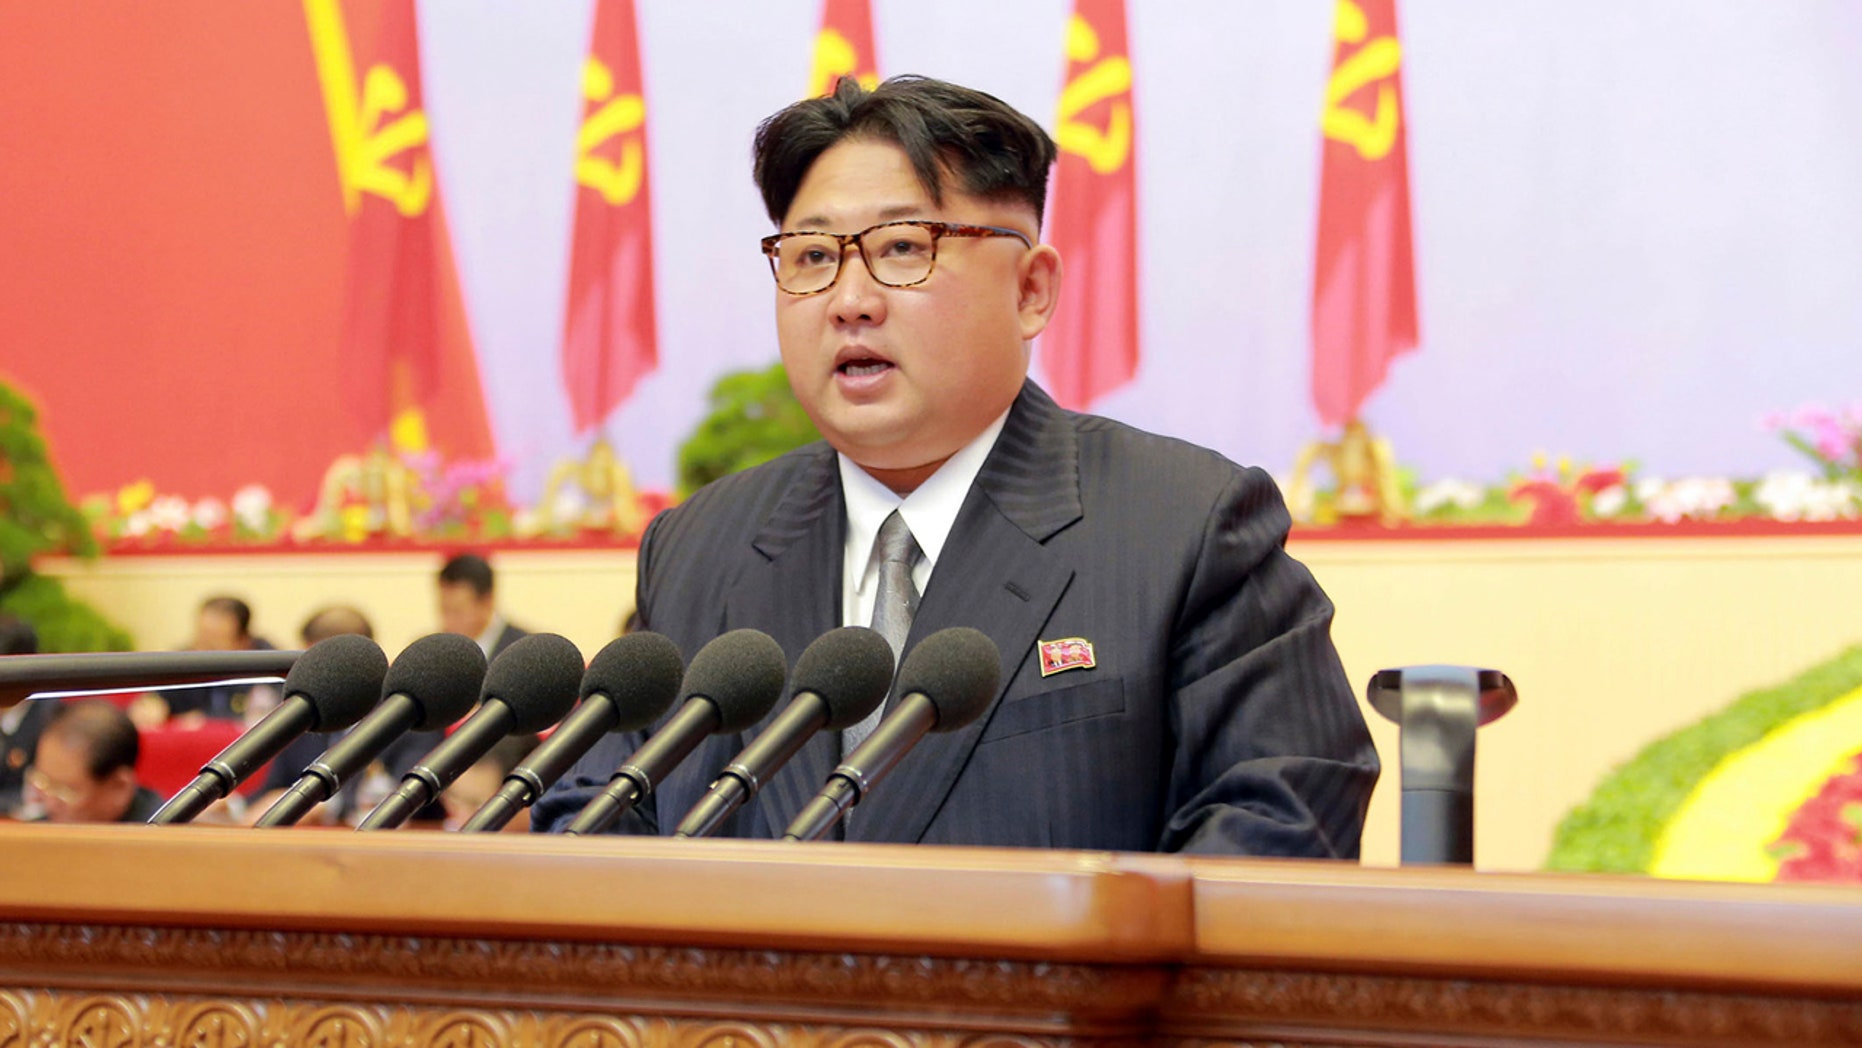 In this May 8, 2016, photo taken and distributed by the North Korean government, North Korean leader Kim Jong Un speaks during the party congress in Pyongyang, North Korea. (Korean Central News Agency/Korea News Service via AP)  JAPAN OUT UNTIL 14 DAYS AFTER THE DAY OF TRANSMISSION (KCNA via KNS)